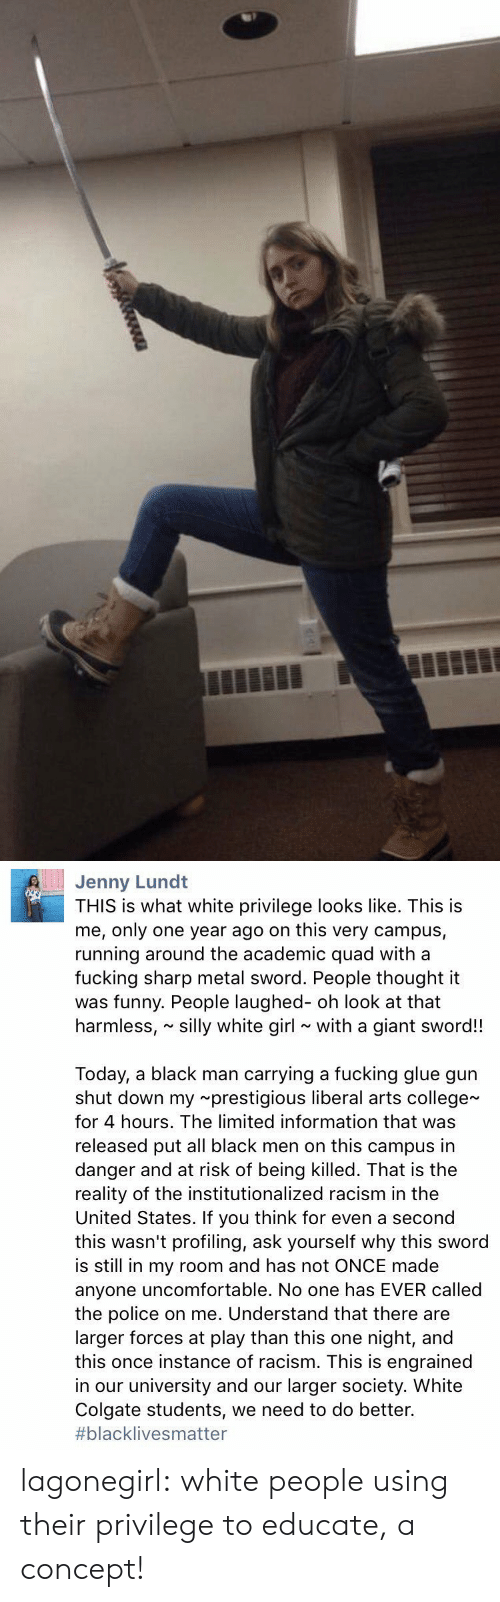 Running Around: Jenny Lund  THIS is what white privilege looks like. This is  me, only one year ago on this very campus,  running around the academic quad with a  fucking sharp metal sword. People thought it  was funny. People laughed- oh look at that  harmless, silly white girl with a giant sword!!  Today, a black man carrying a fucking glue gun  shut down my prestigious liberal arts college  for 4 hours. The limited information that was  released put all black men on this campus in  danger and at risk of being killed. That is the  reality of the institutionalized racism in the  United States. If you think for even a second  this wasn't profiling, ask yourself why this sword  is still in my room and has not ONCE made  anyone uncomfortable. No one has EVER called  the police on me. Understand that there are  larger forces at play than this one night, and  this once instance of racism. This is engrained  in our university and our larger society. White  Colgate students, we need to do better.  #blackIive s matter lagonegirl:   white people using their privilege to educate, a concept!